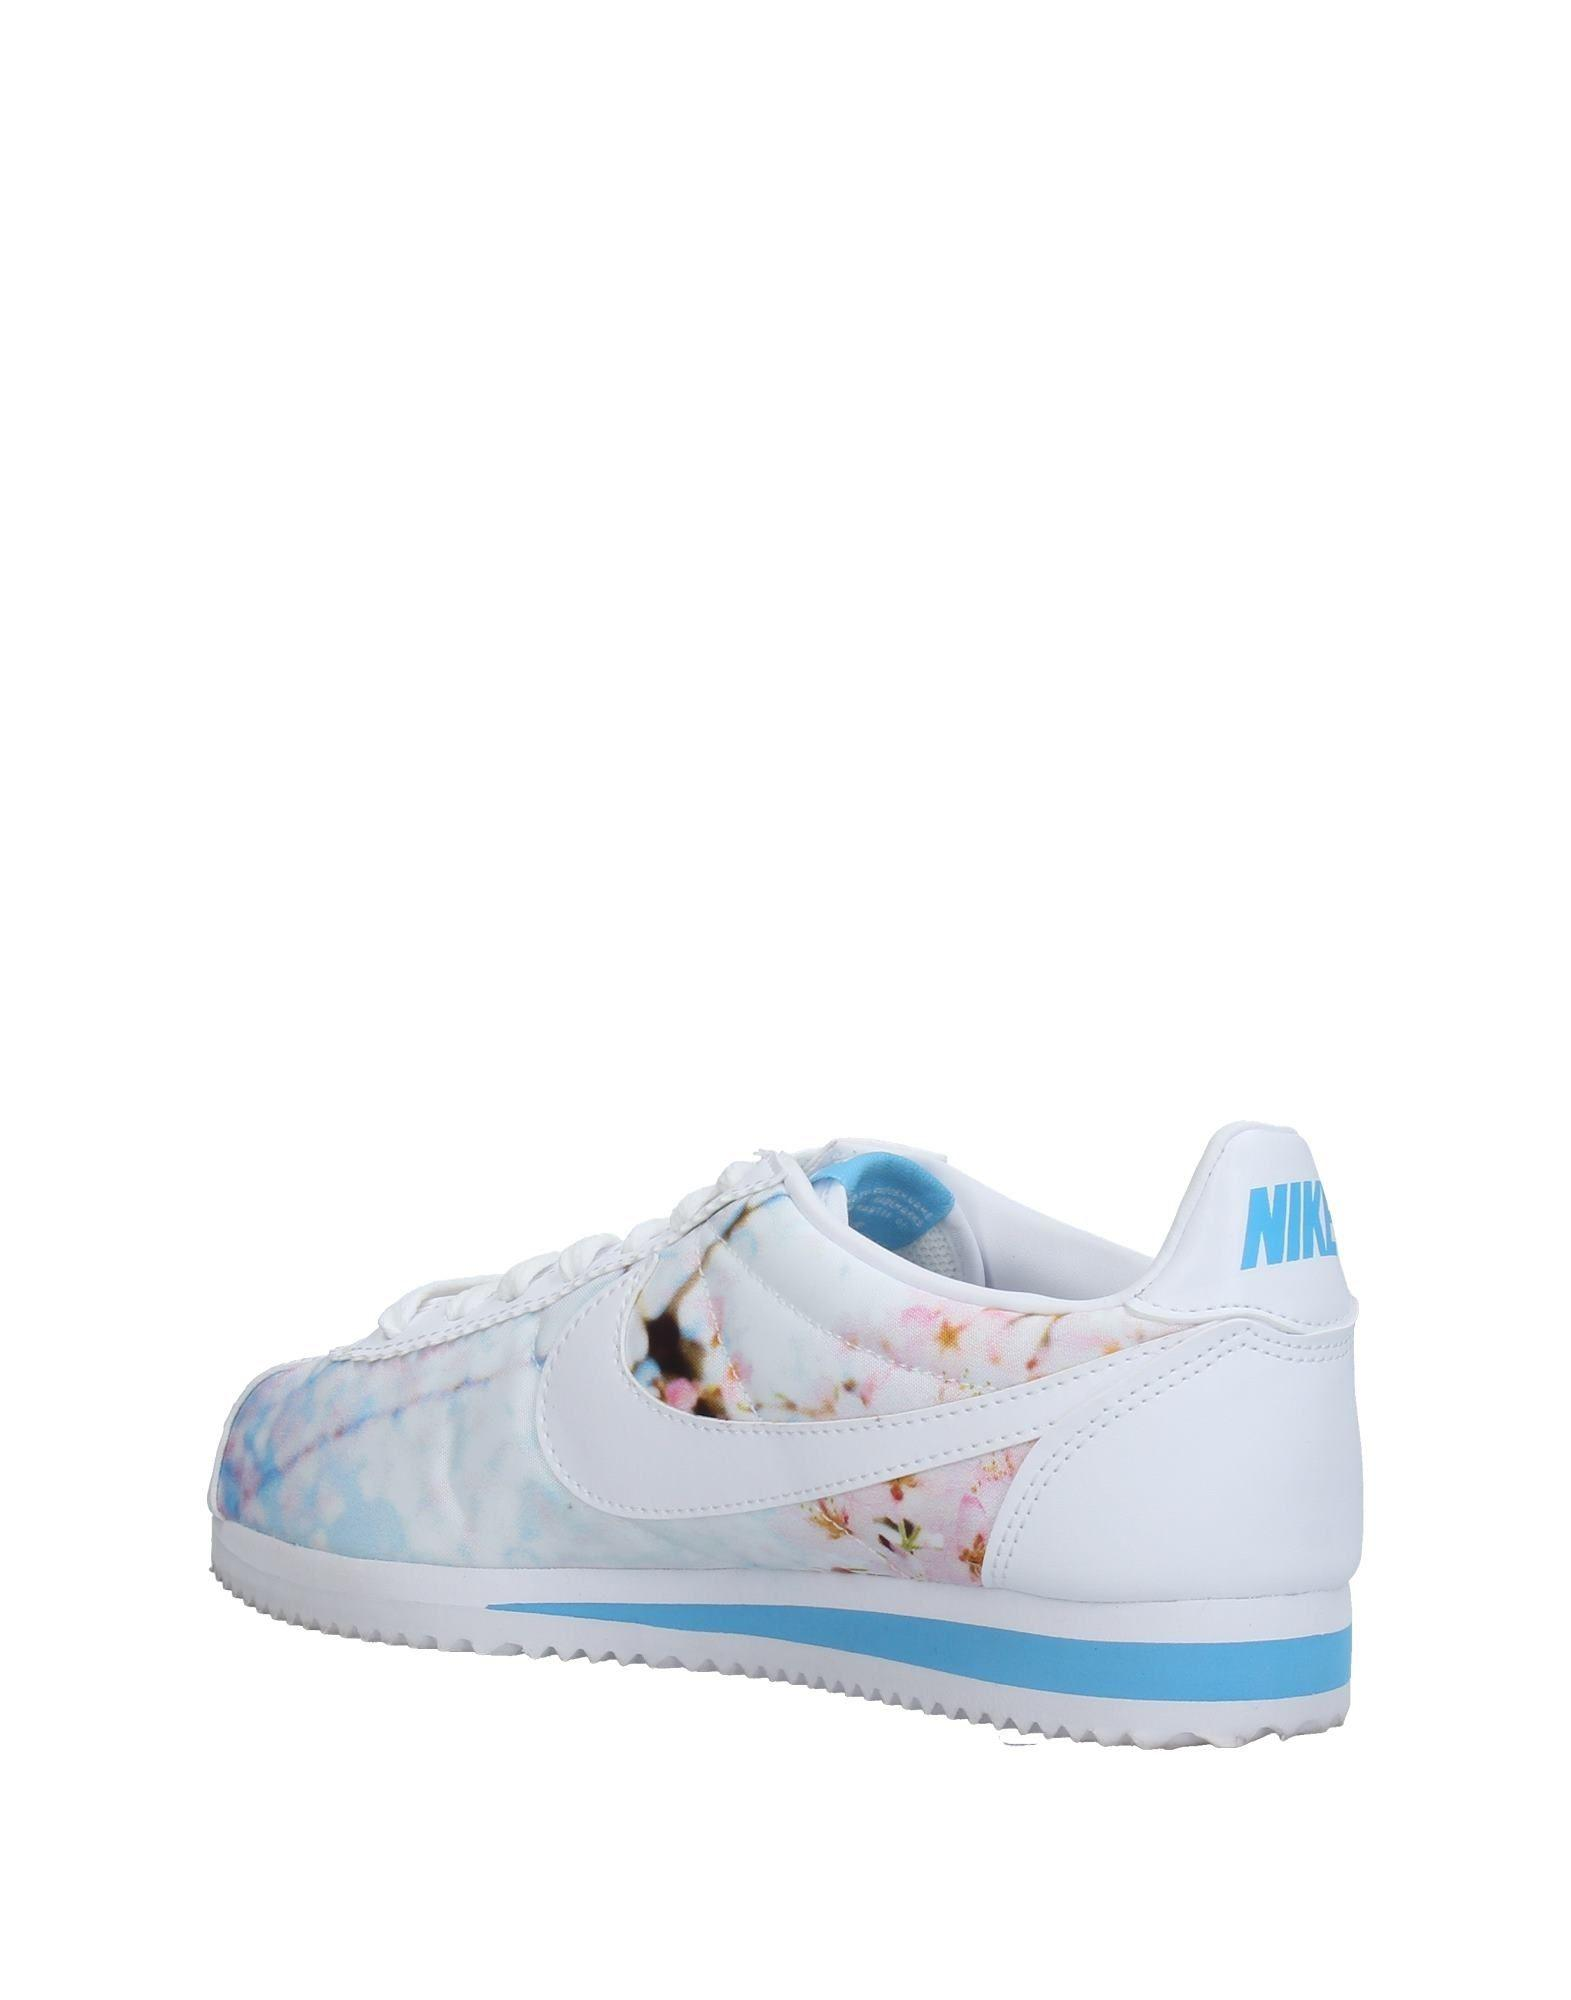 6970ff731593a Lyst - Nike Classic Cortez Cherry Blossom Leather Sneakers - Save 40%